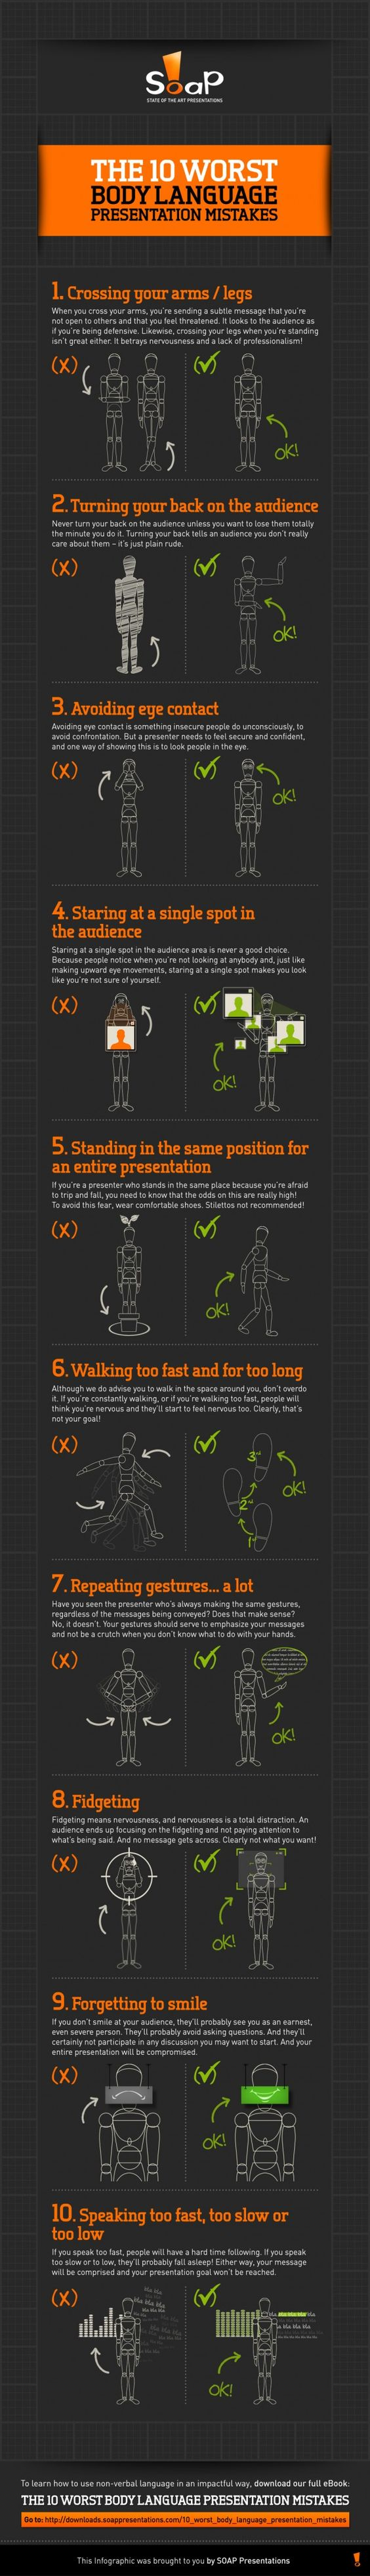 interviews the worst body language mistakes infographic we interviews the 8 worst body language mistakes infographic